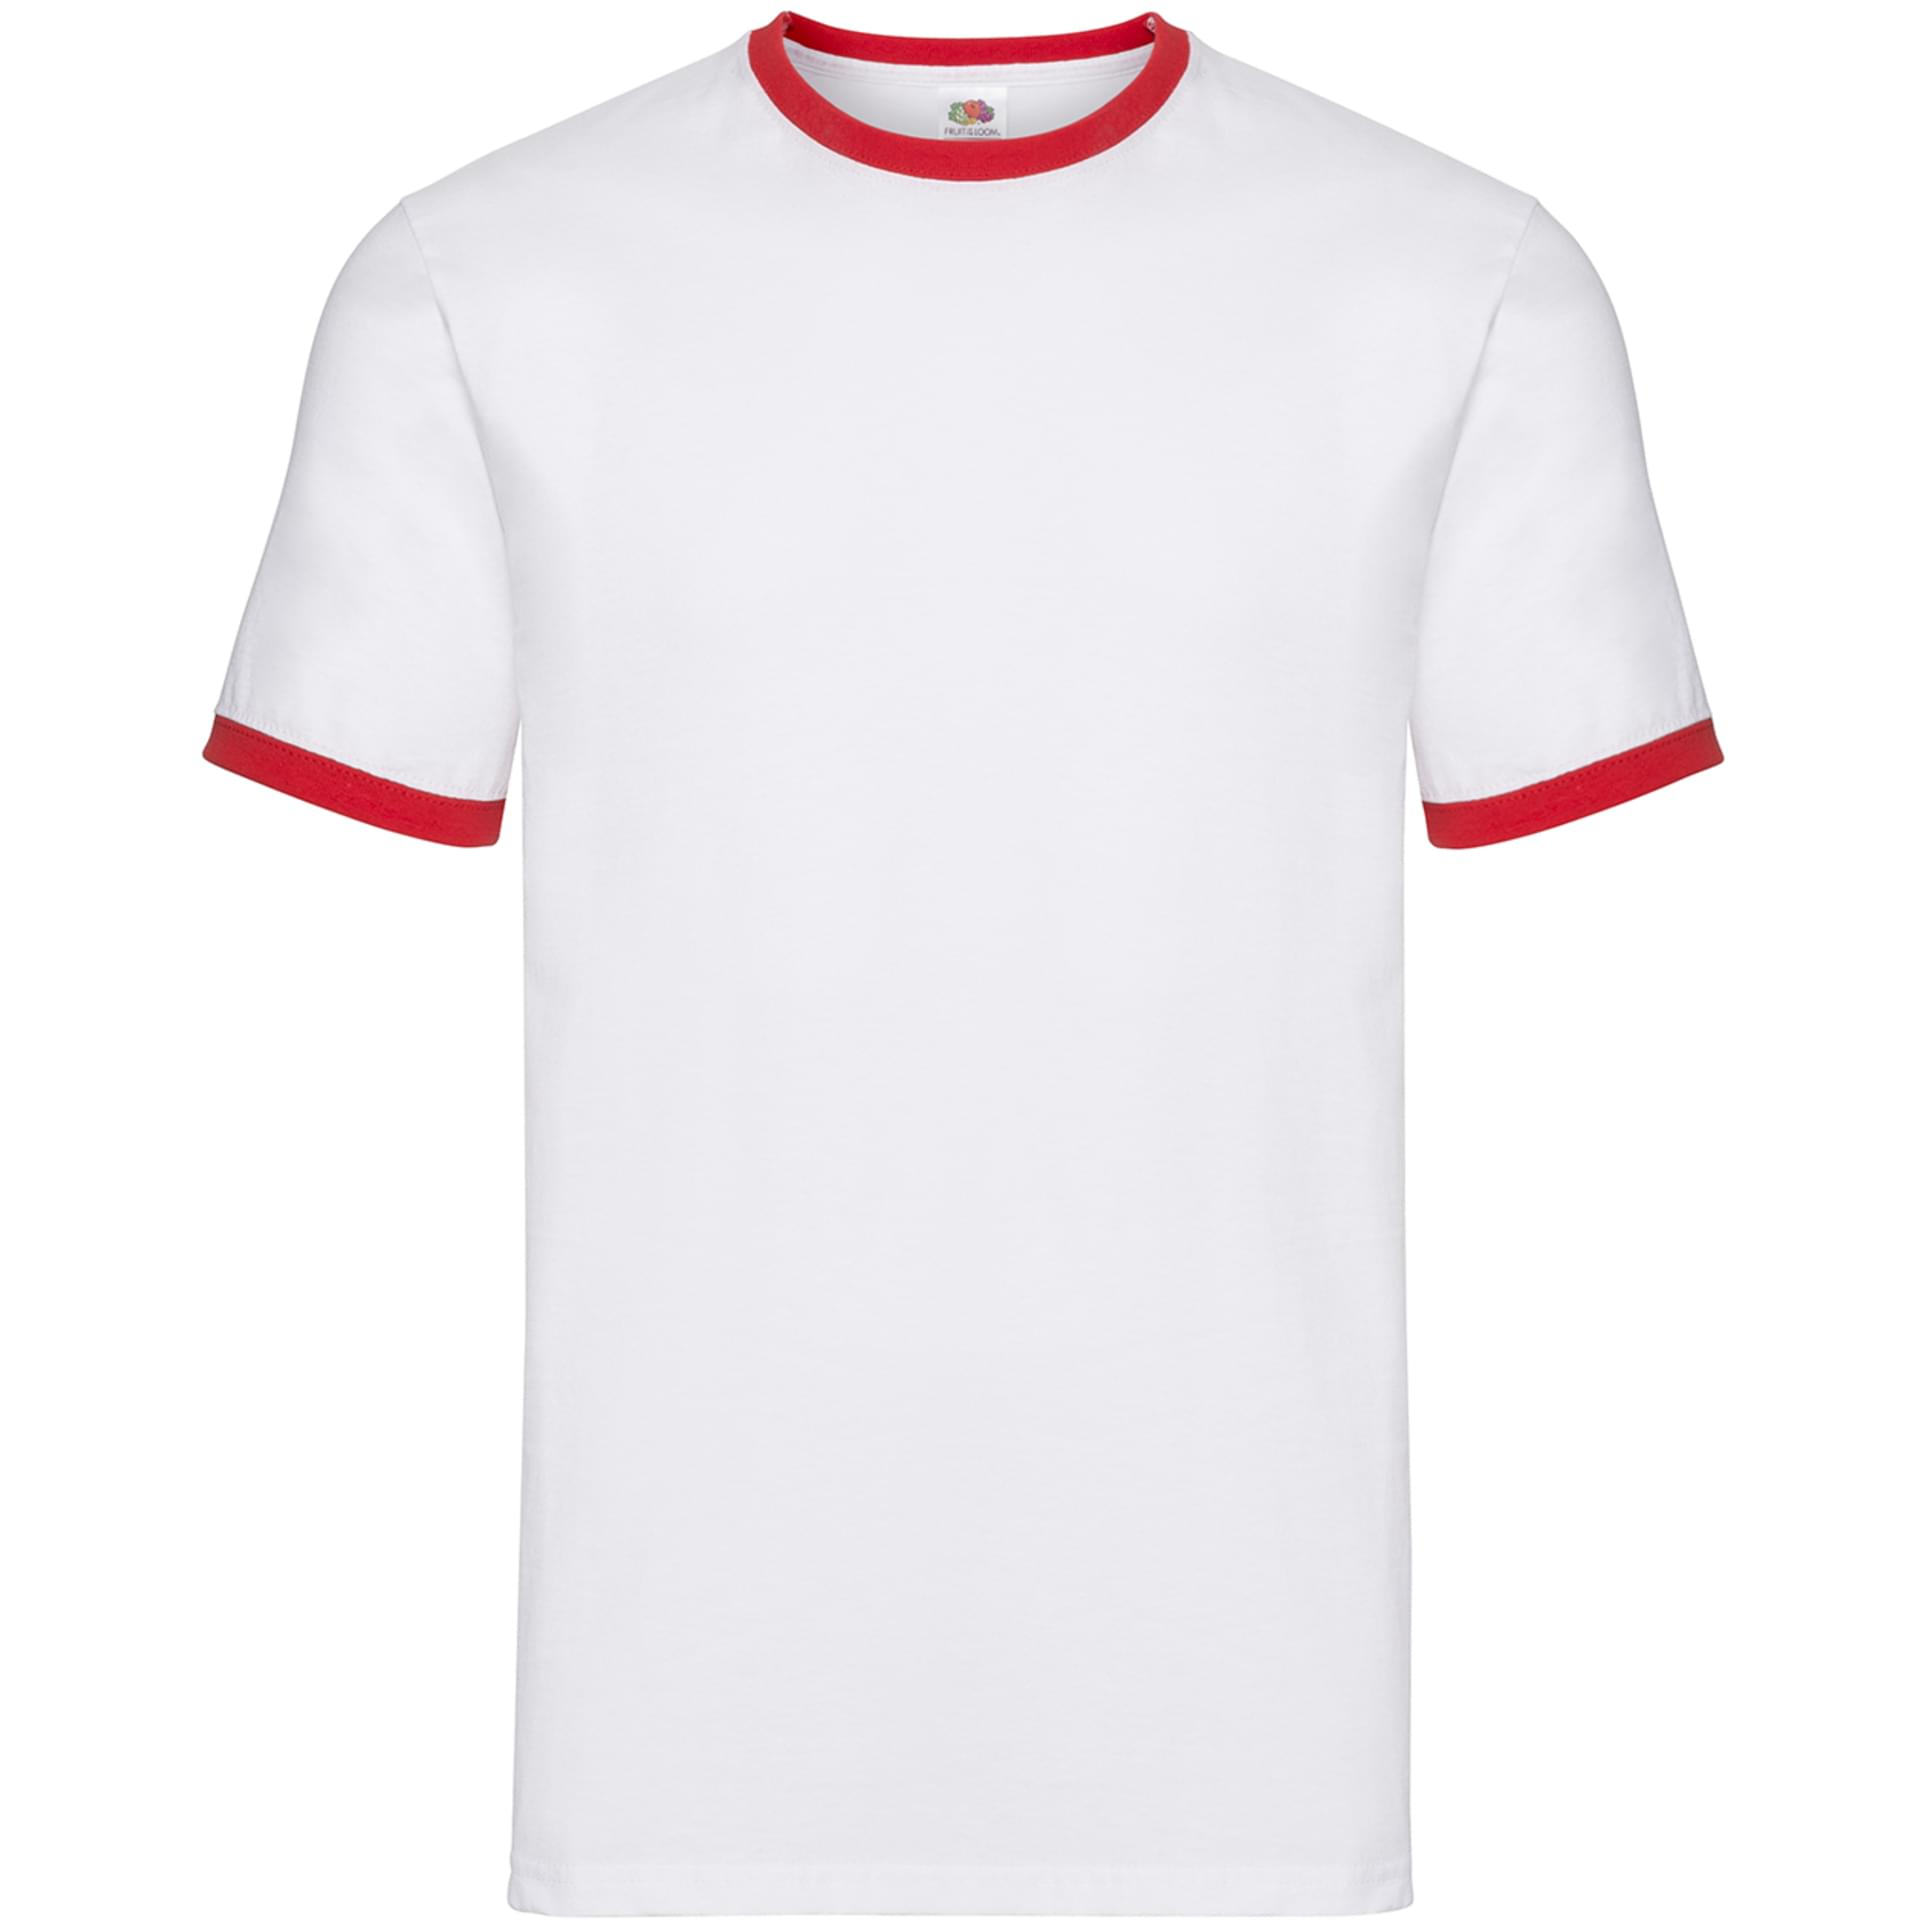 78040bef10627 ... Tee-shirt personnalisé Ringer Tee fruit of the loom blanc/rouge.  Couleur blanc/rouge